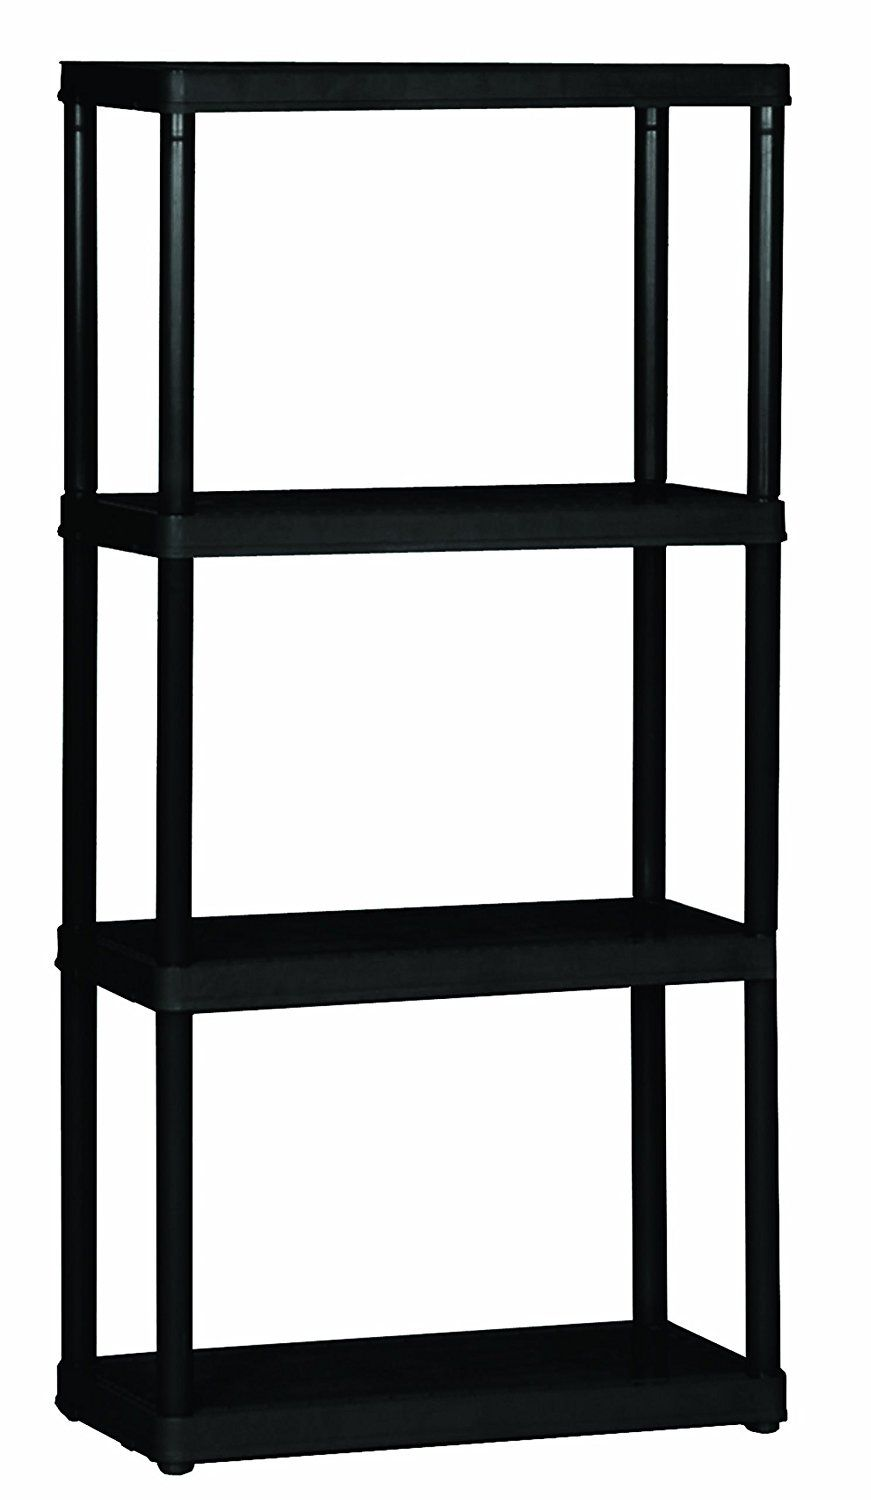 Top 10 Best Shelving Unit 2017